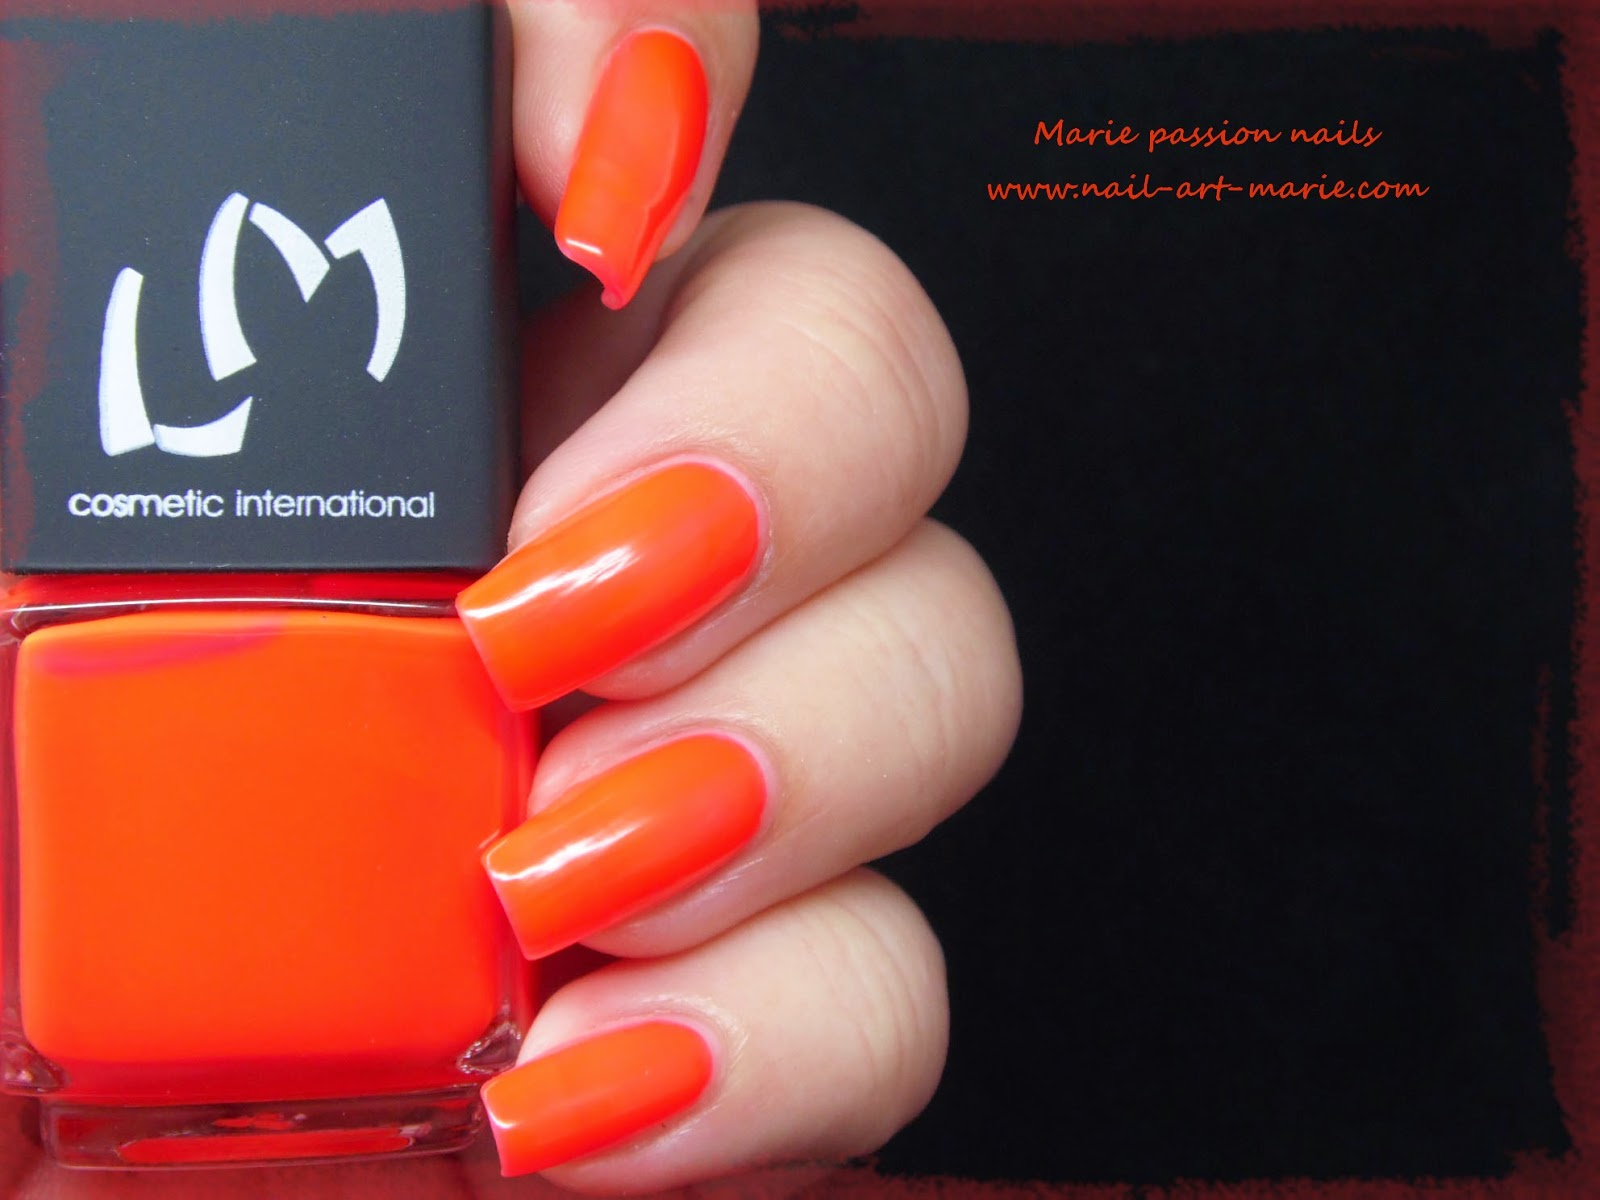 LM Cosmetic San Fransisco3